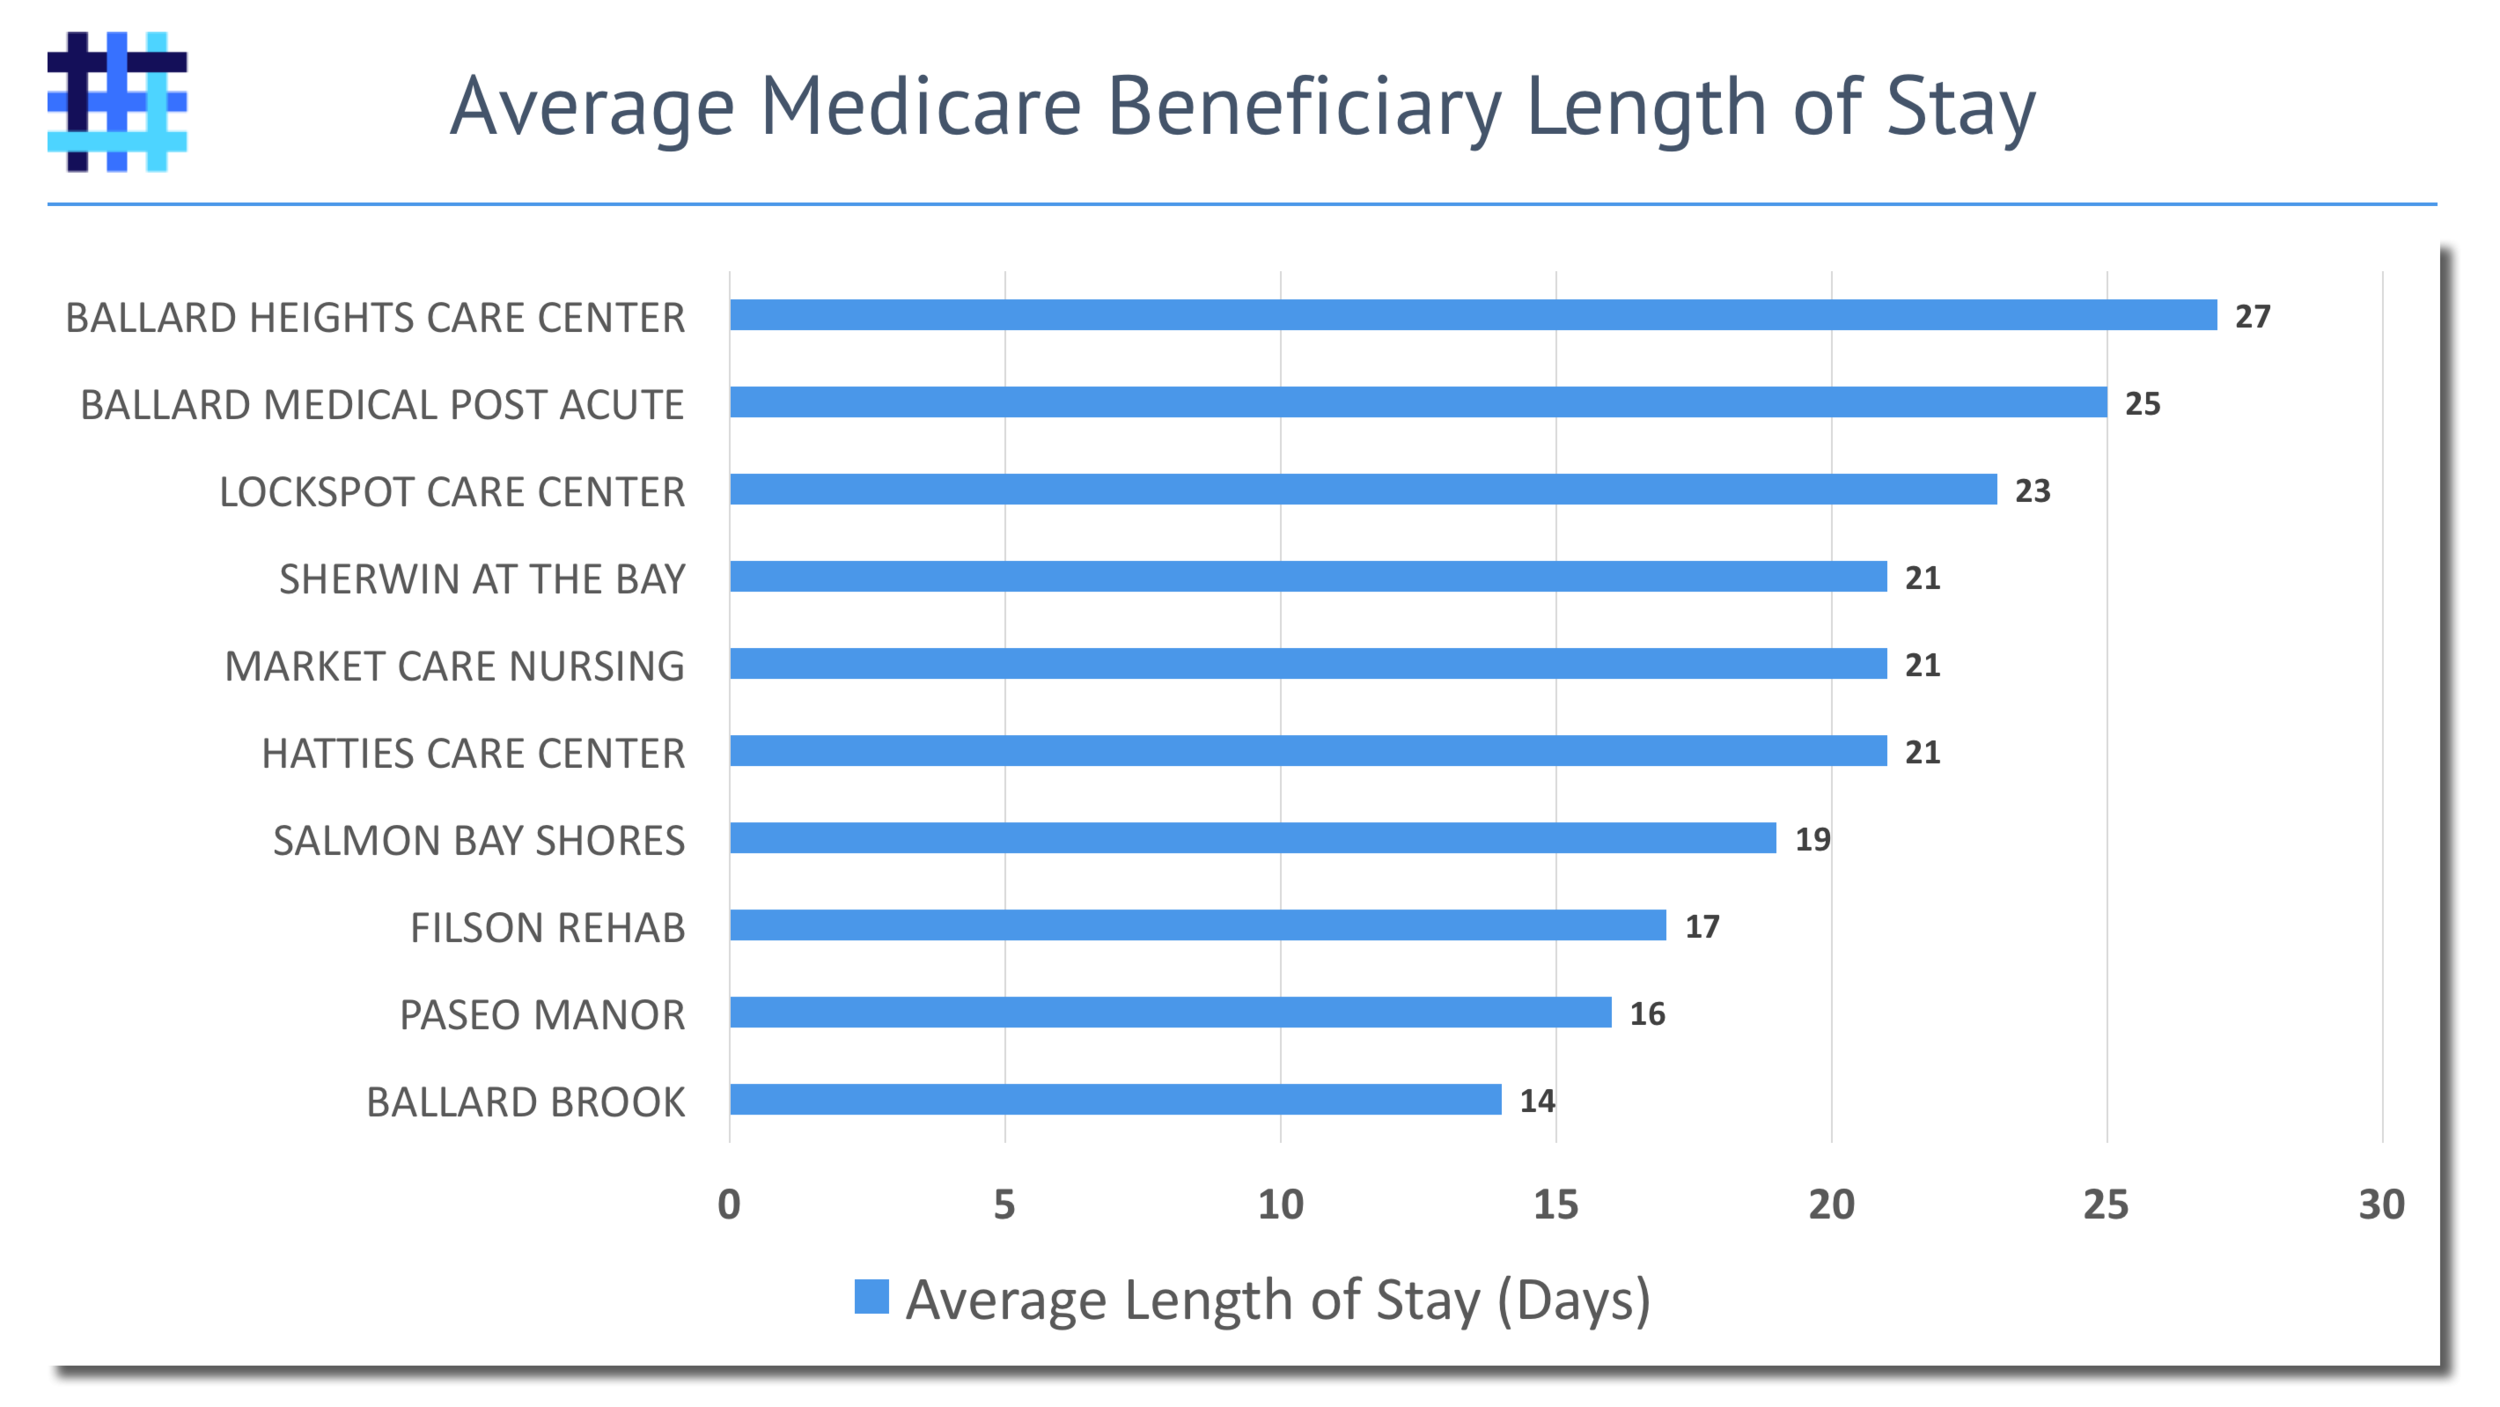 Nursing Home and Skilled Nursing Facility Average Length of Stay per Beneficiary